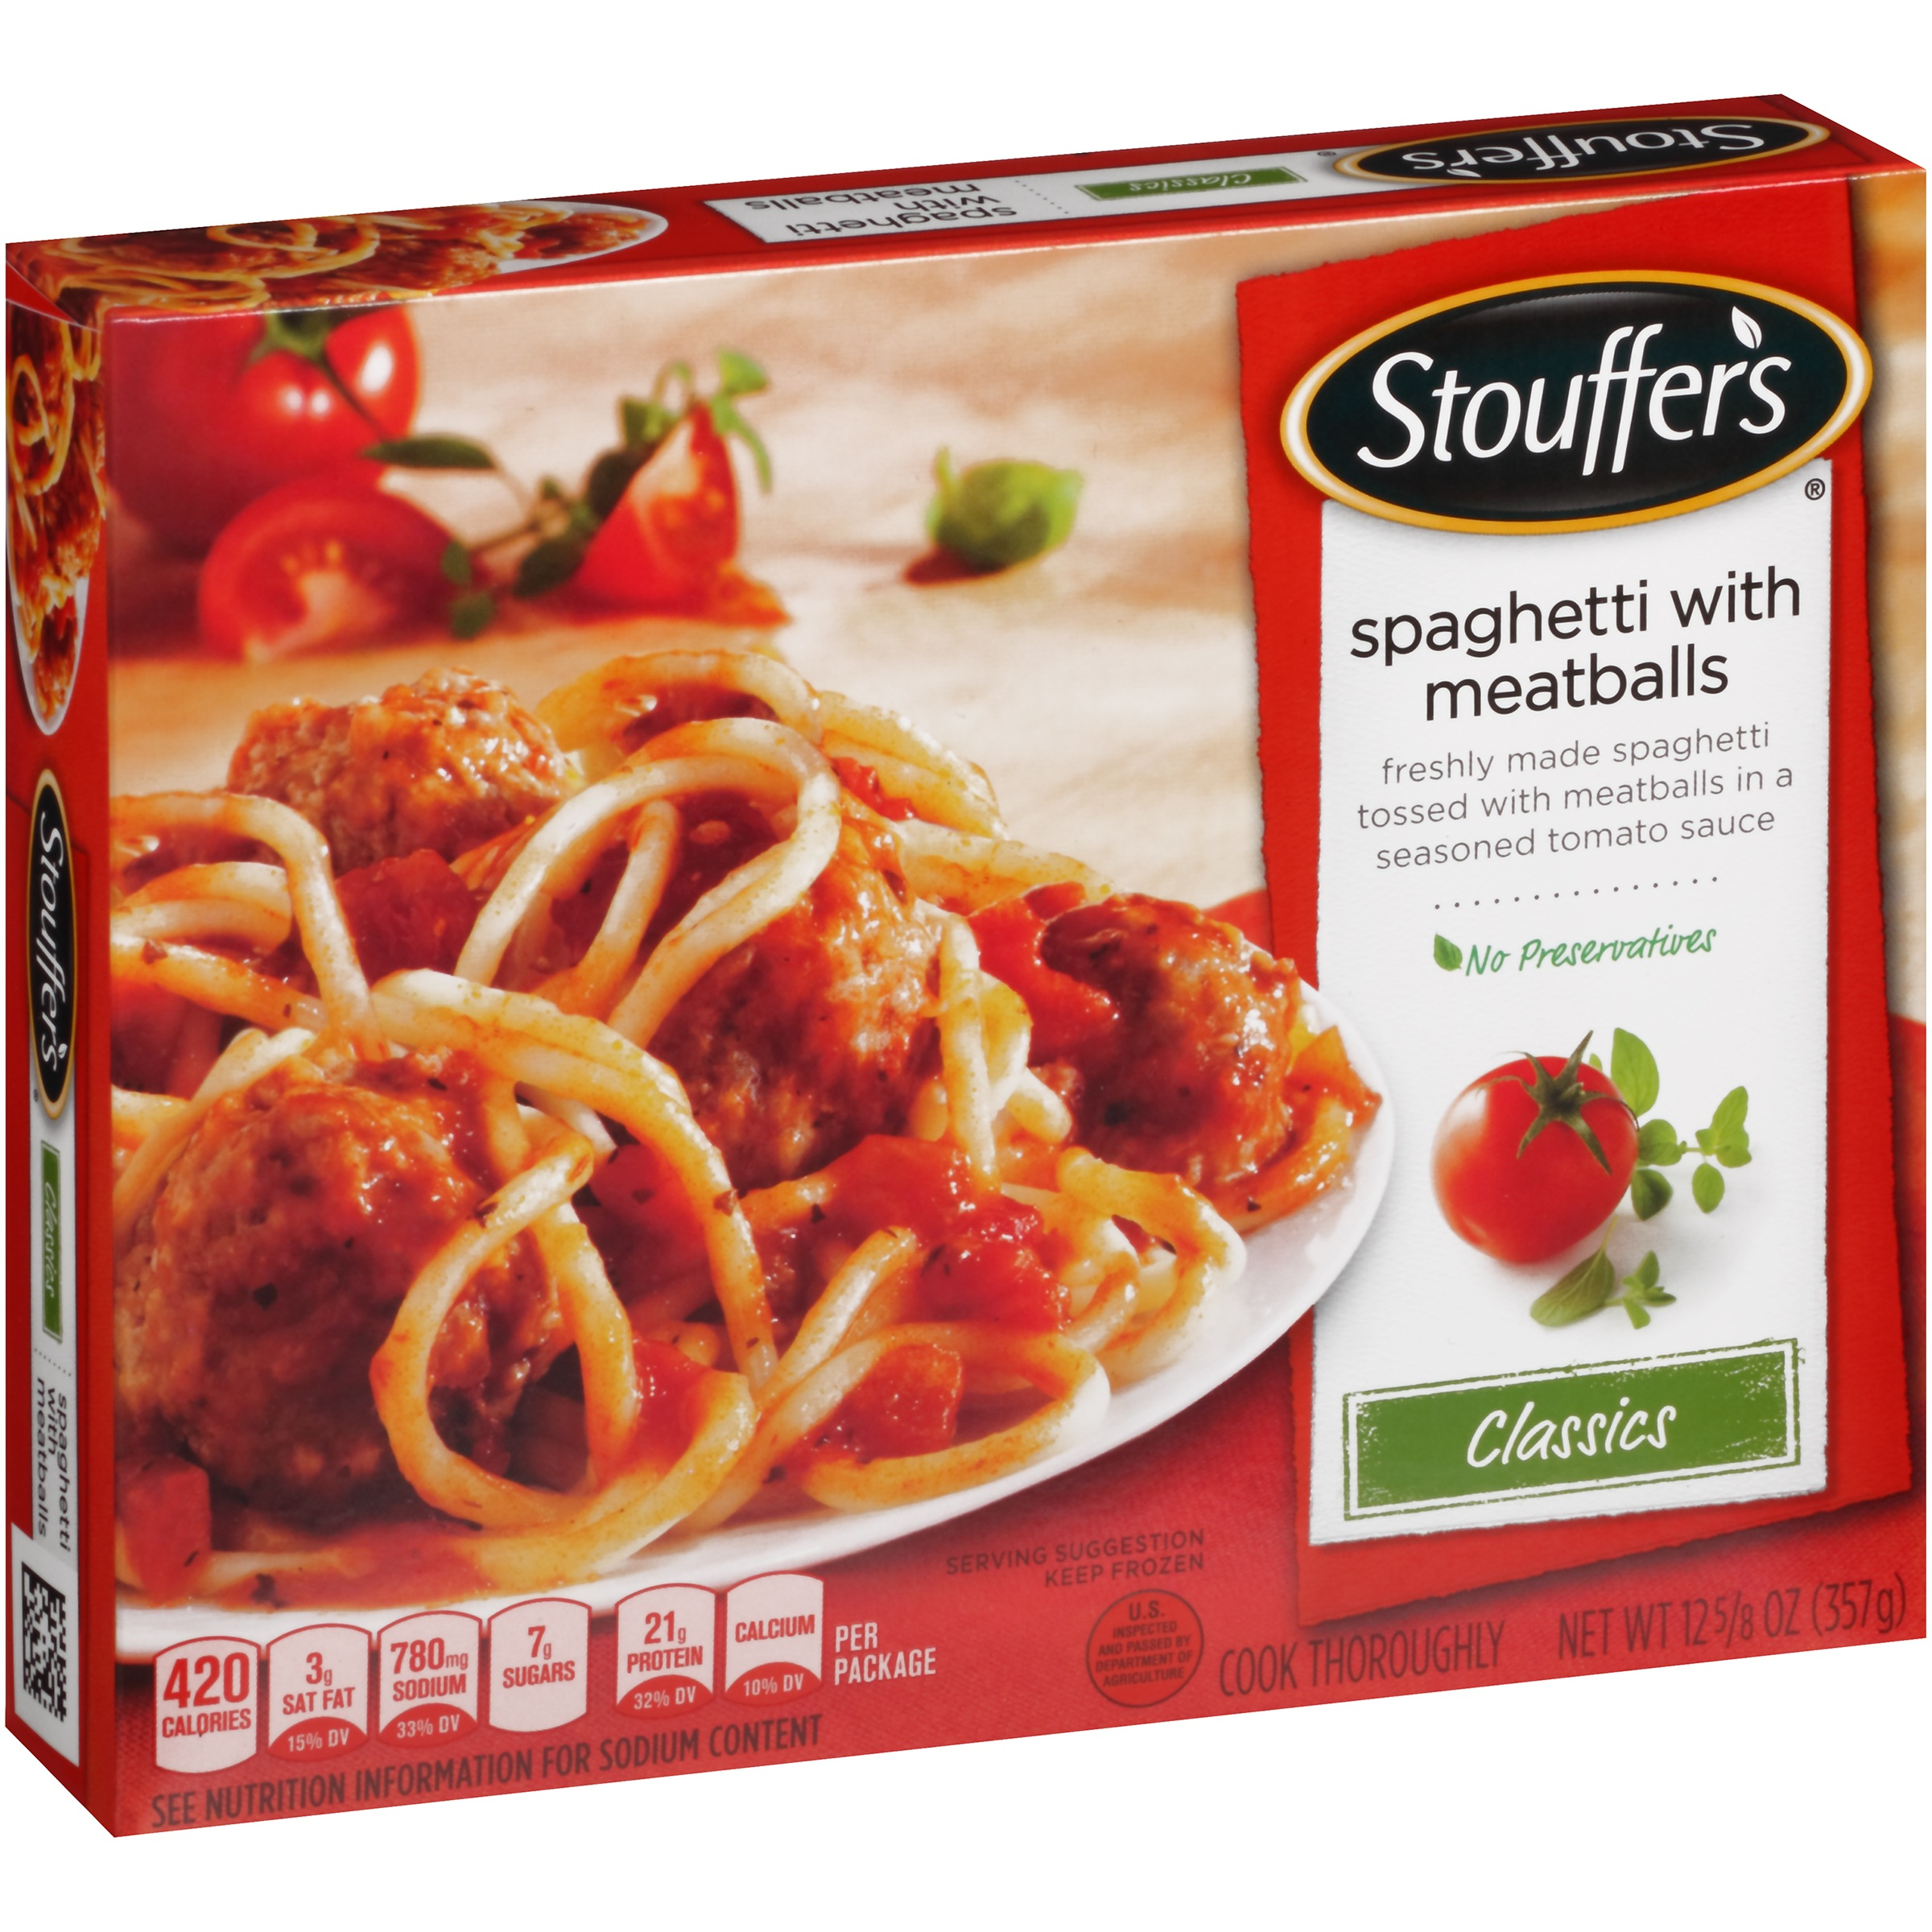 STOUFFER'S Classics Spaghetti with Meatballs 12.625 oz Box